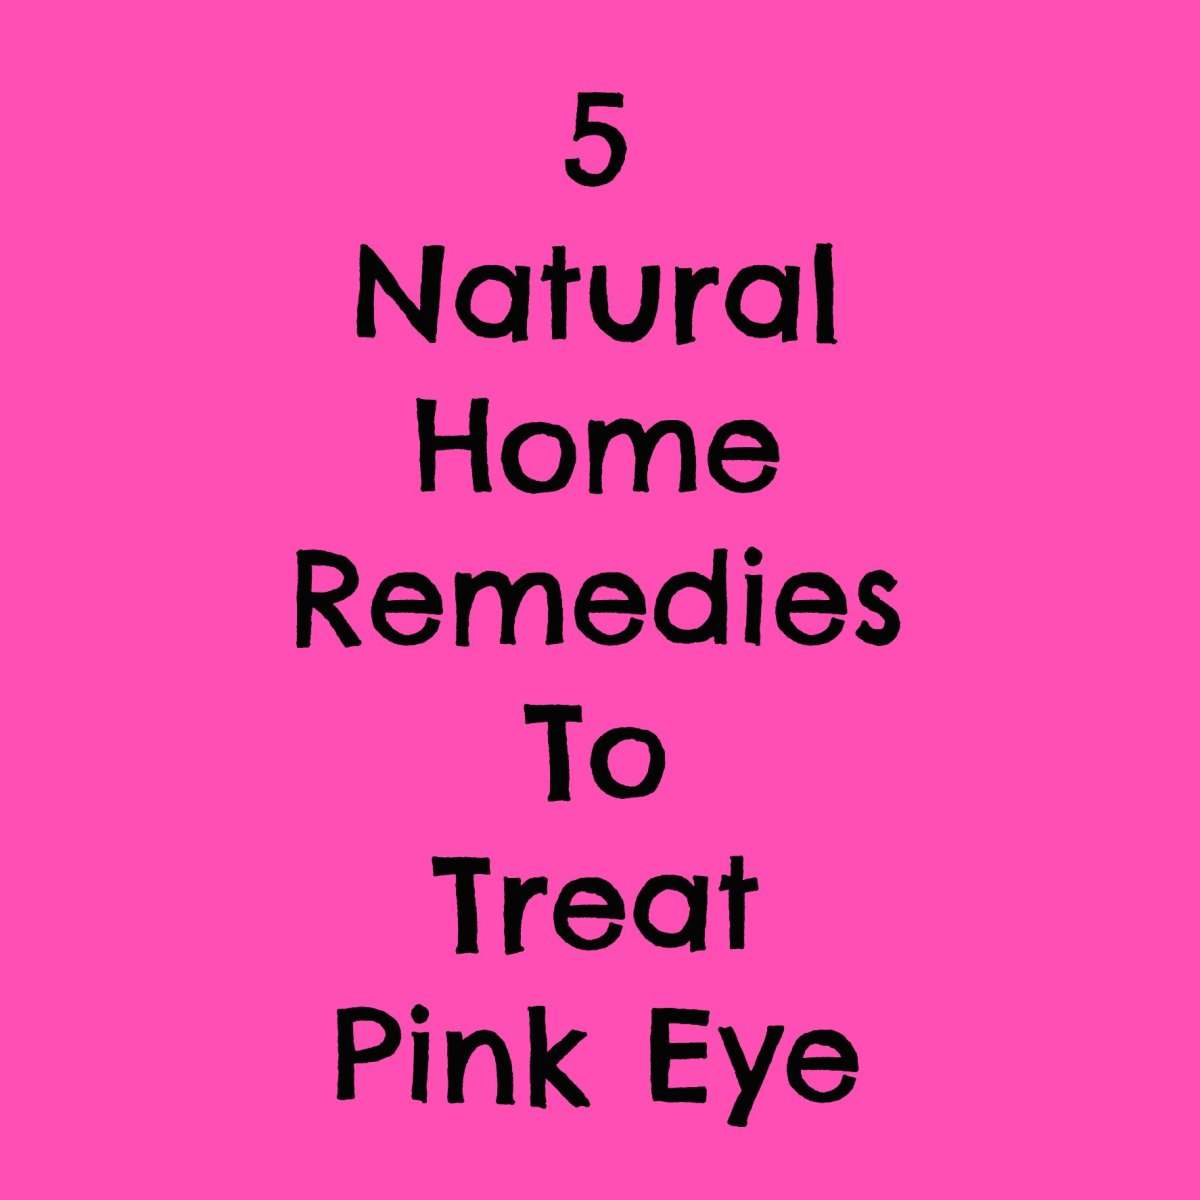 How to Get Rid of Pink Eye - 5 Natural Home Remedies